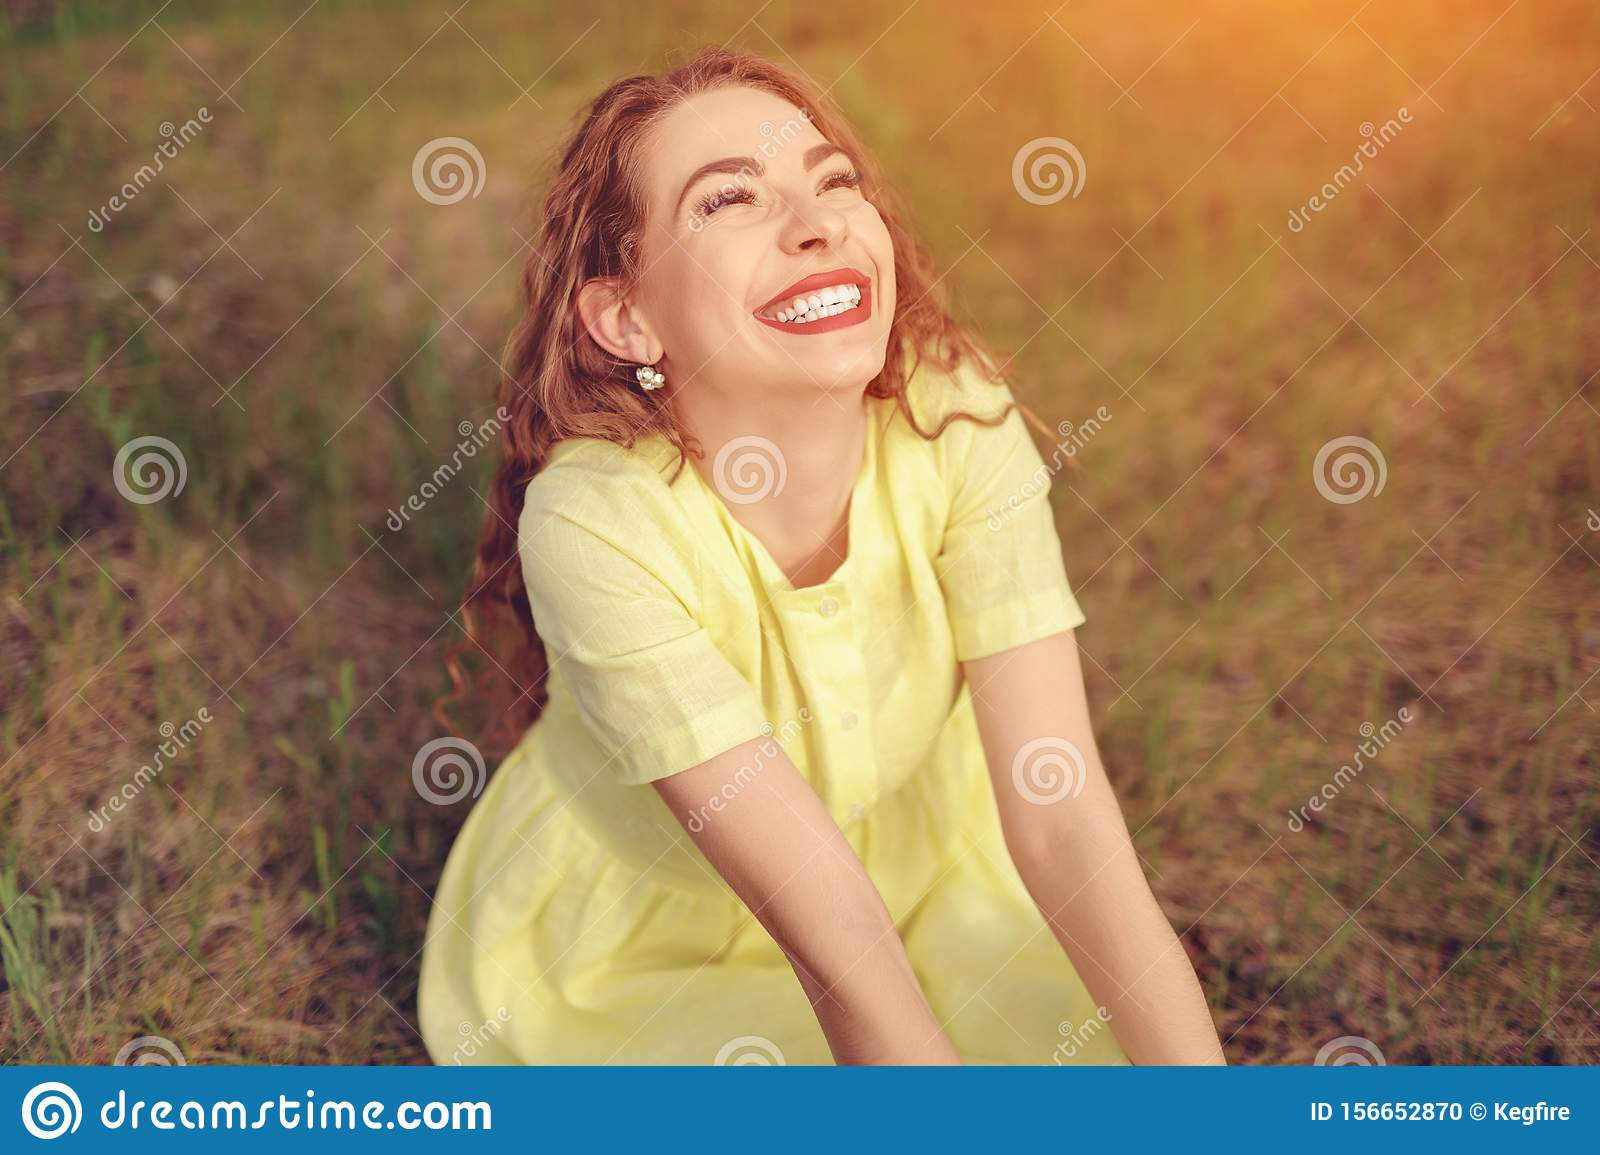 Carefree woman laughing sitting in field